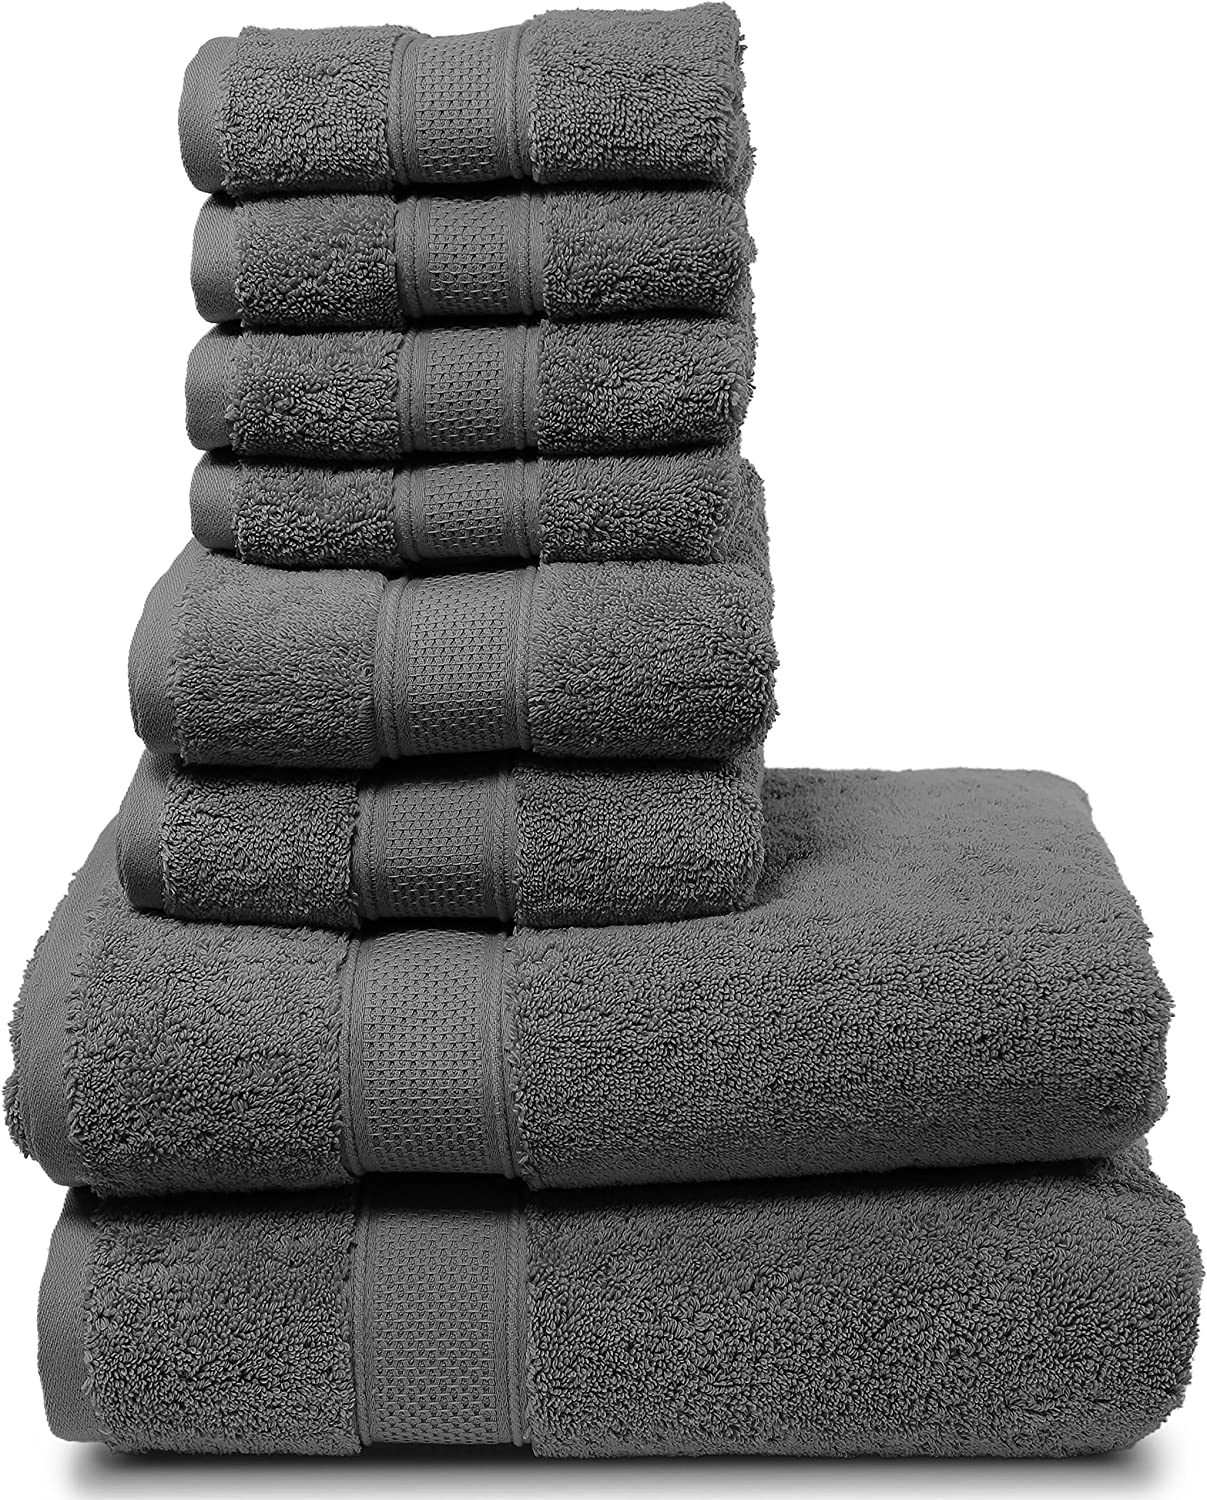 "Maura 8 Piece Bath Towel Set.2 Extra Large 30""x56"" Premium Turkish Bath Towels, 2 Hand Towels, 4 Washclothes. Thick, Soft, Plush and Highly Absorbent Luxury Hotel & Spa Quality Towels - Space Gray: Home & Kitchen"